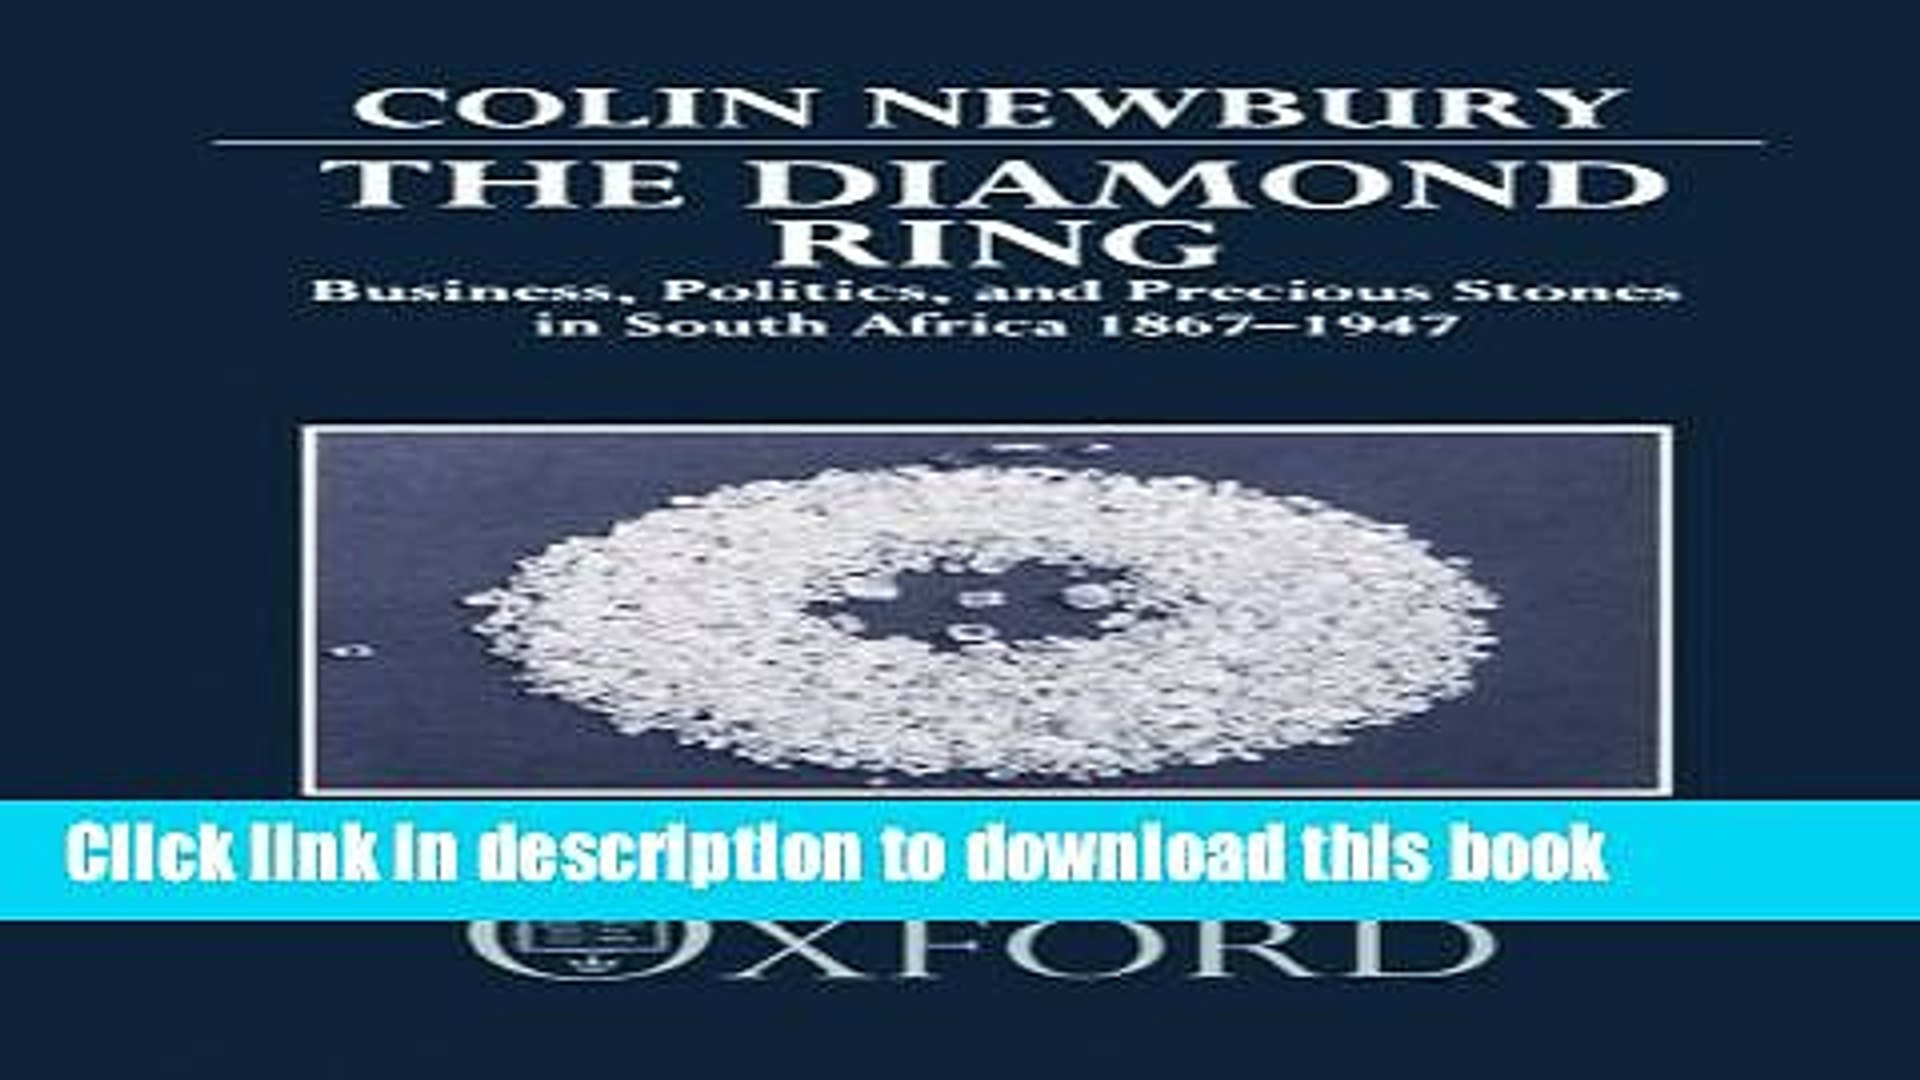 Ebook The Diamond Ring: Business, Politics, and Precious Stones in South Africa, 1867-1947 Free